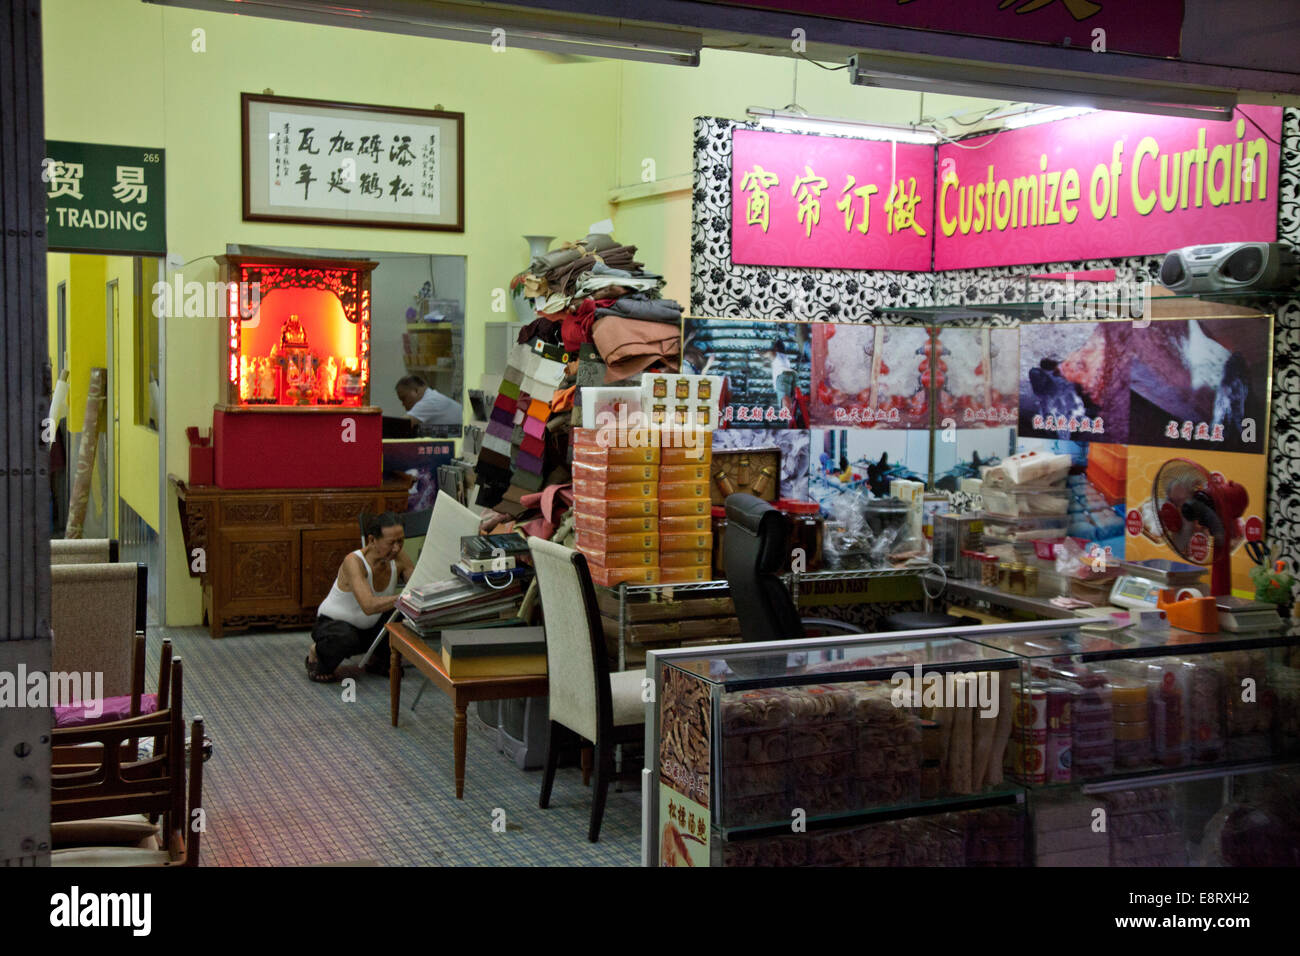 Marvelous Furniture And Upholstery Shop In Chinatown, Singapore